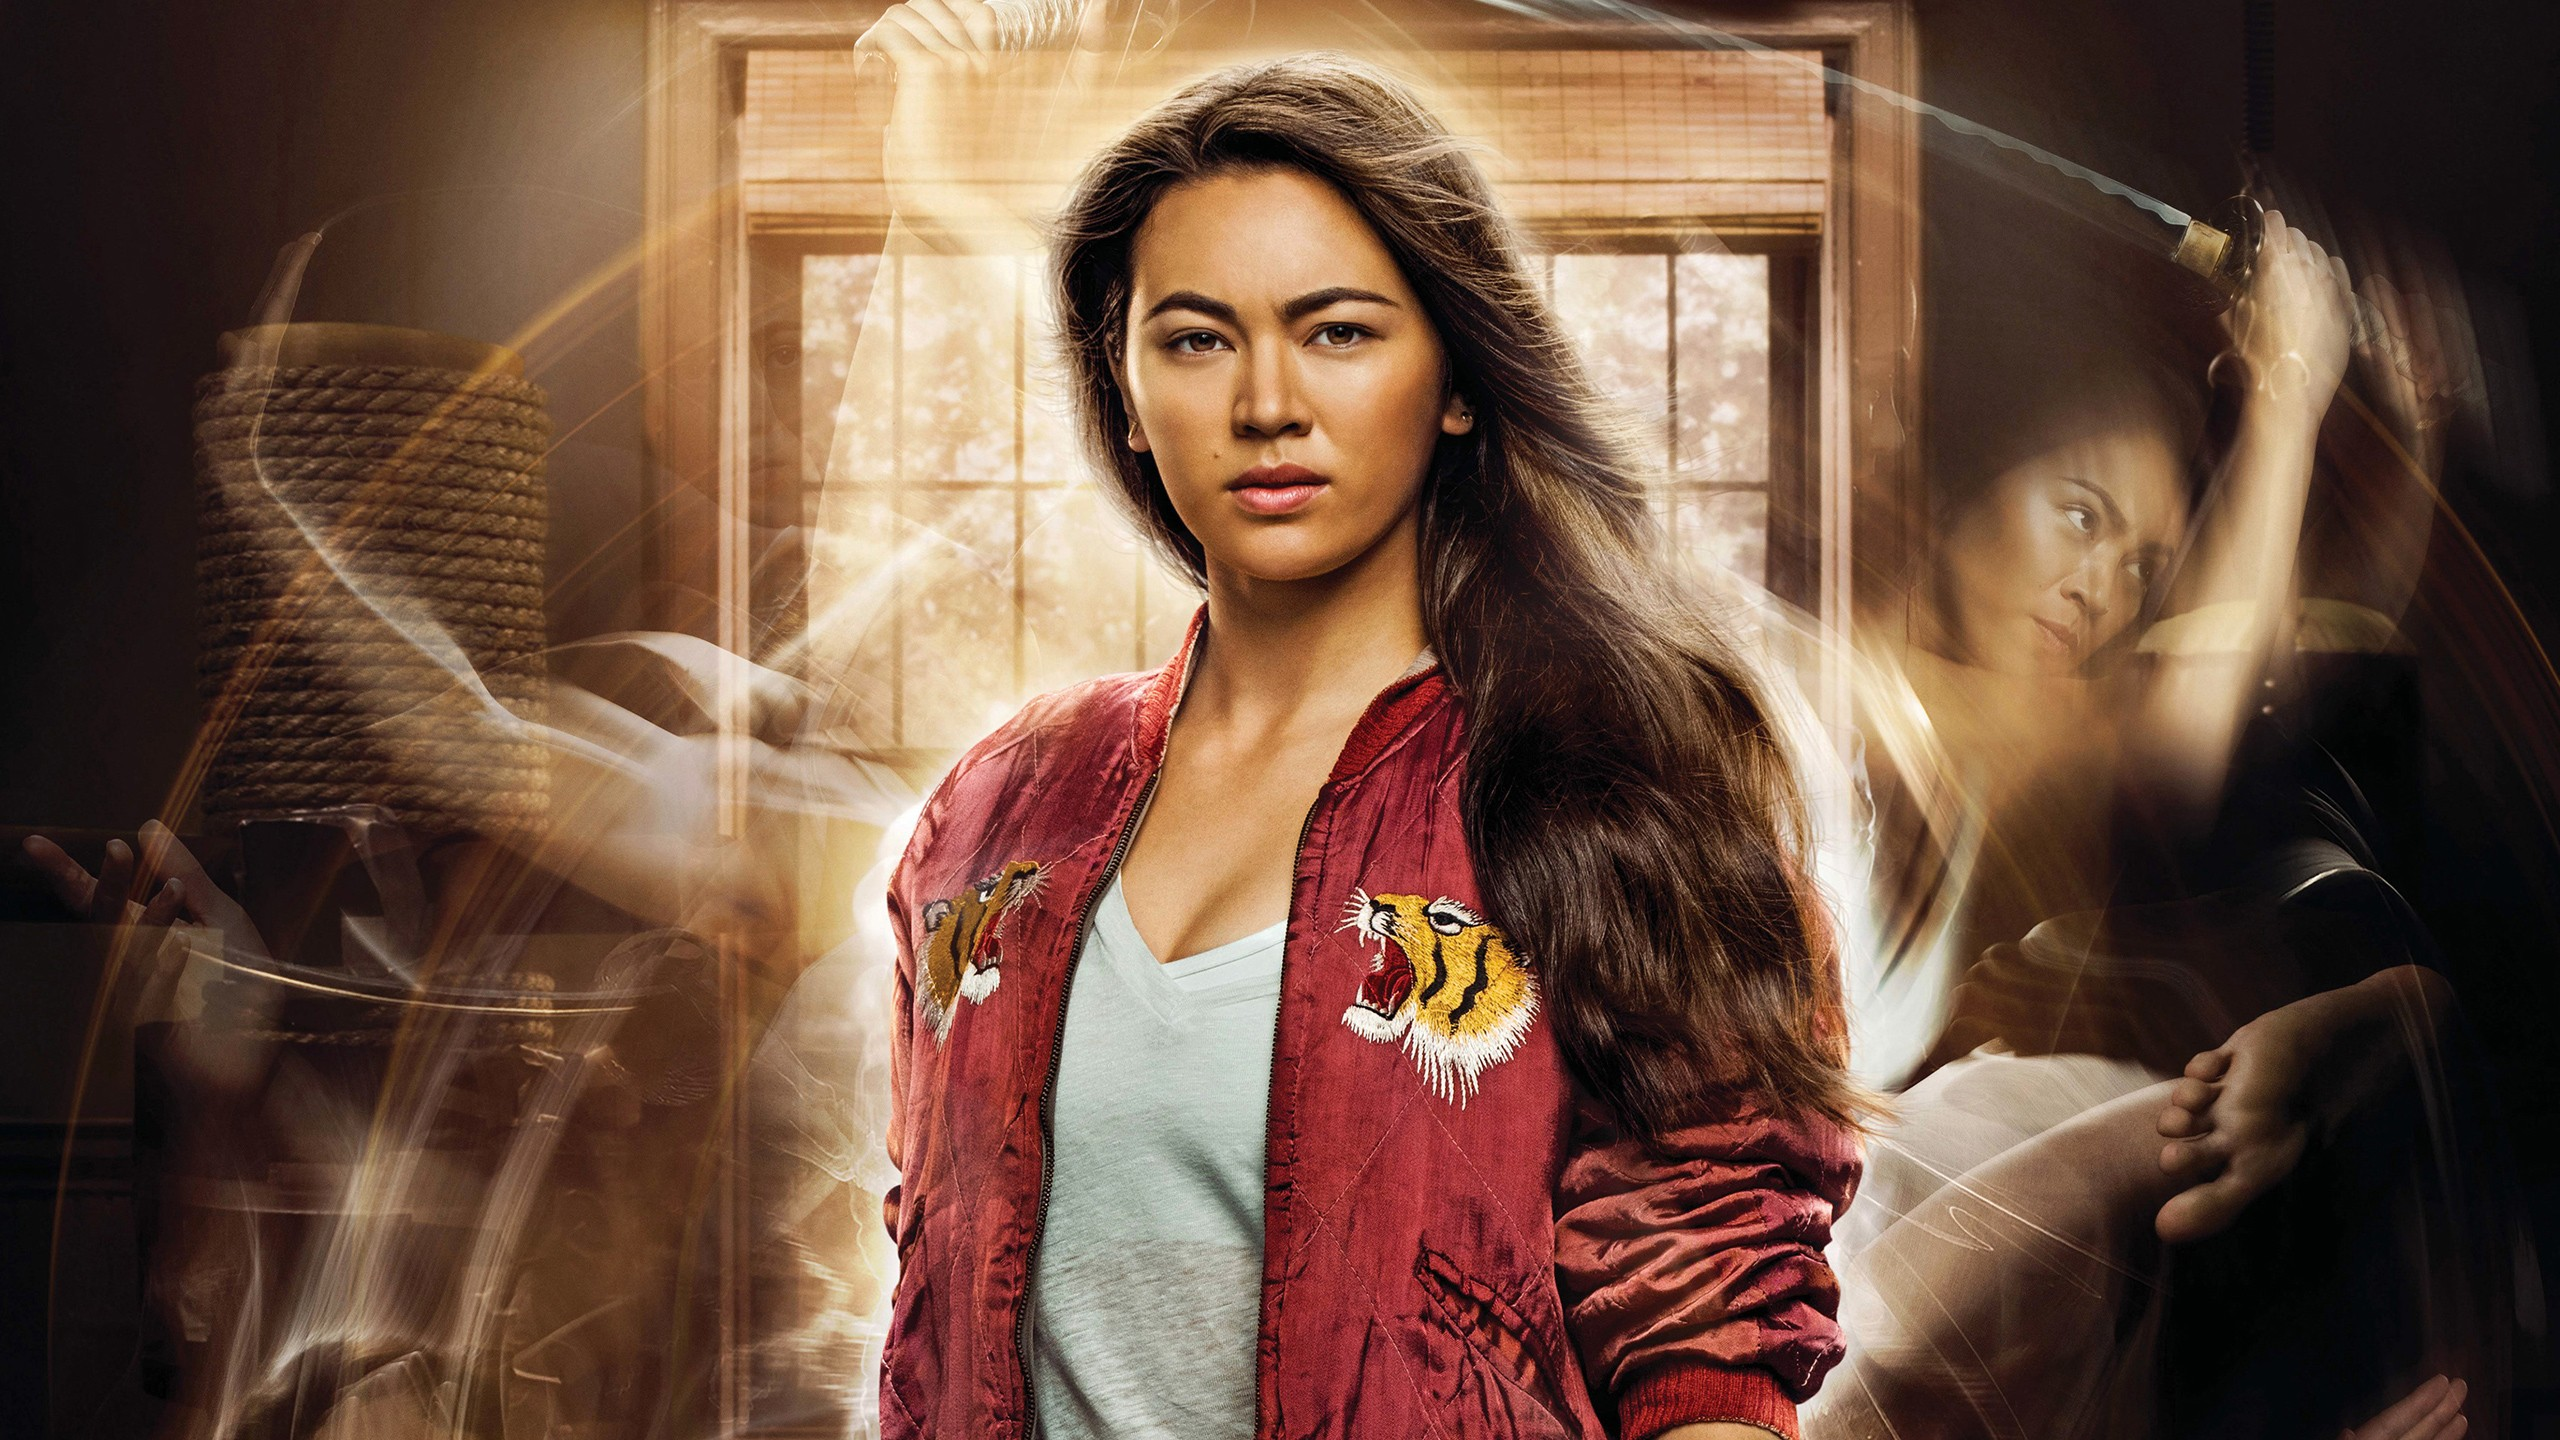 Lucy Hale Cute Wallpapers Jessica Henwick As Colleen Wing In Iron Fist Wallpapers